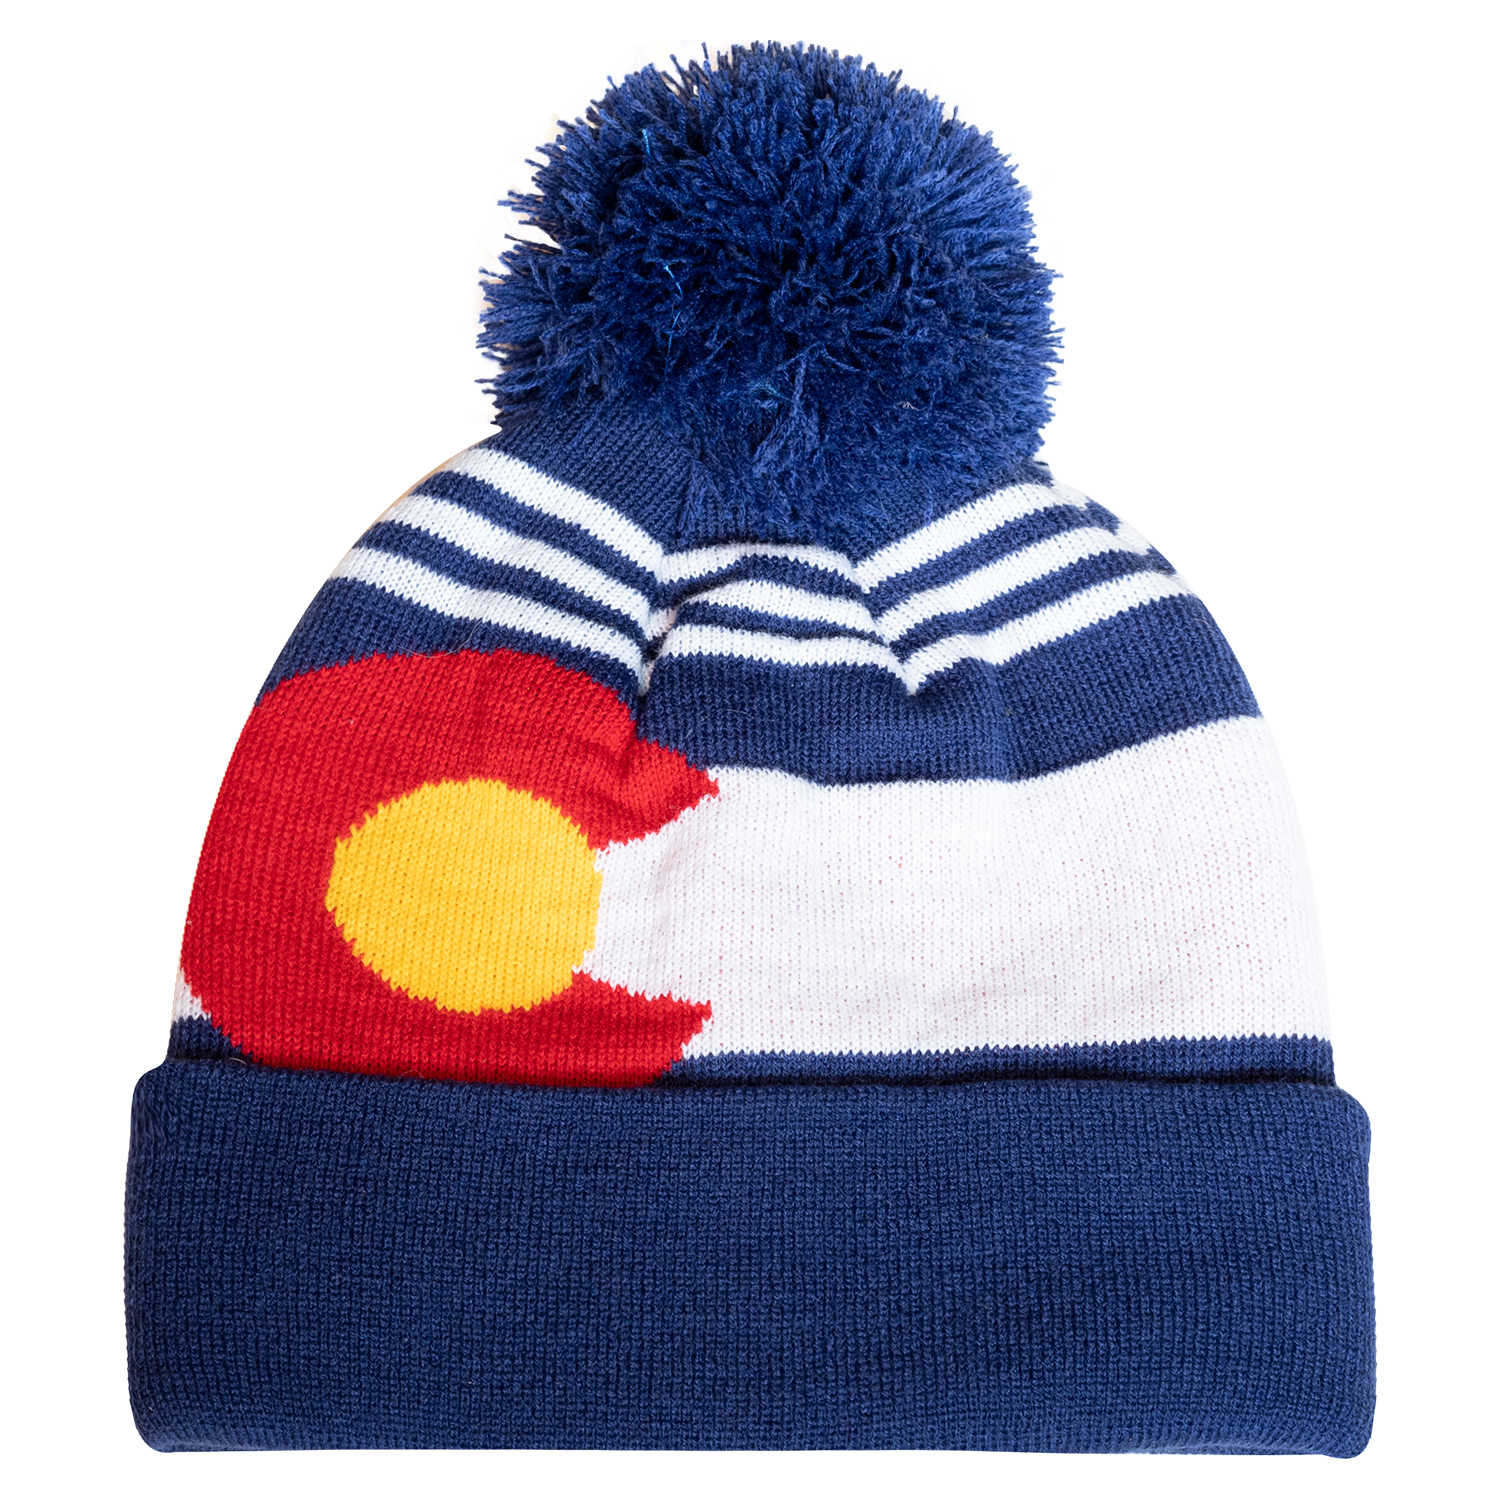 7545a001db6 Pom Pom Beanie – Colorado – Blue with White Stripes – BOCO Gear